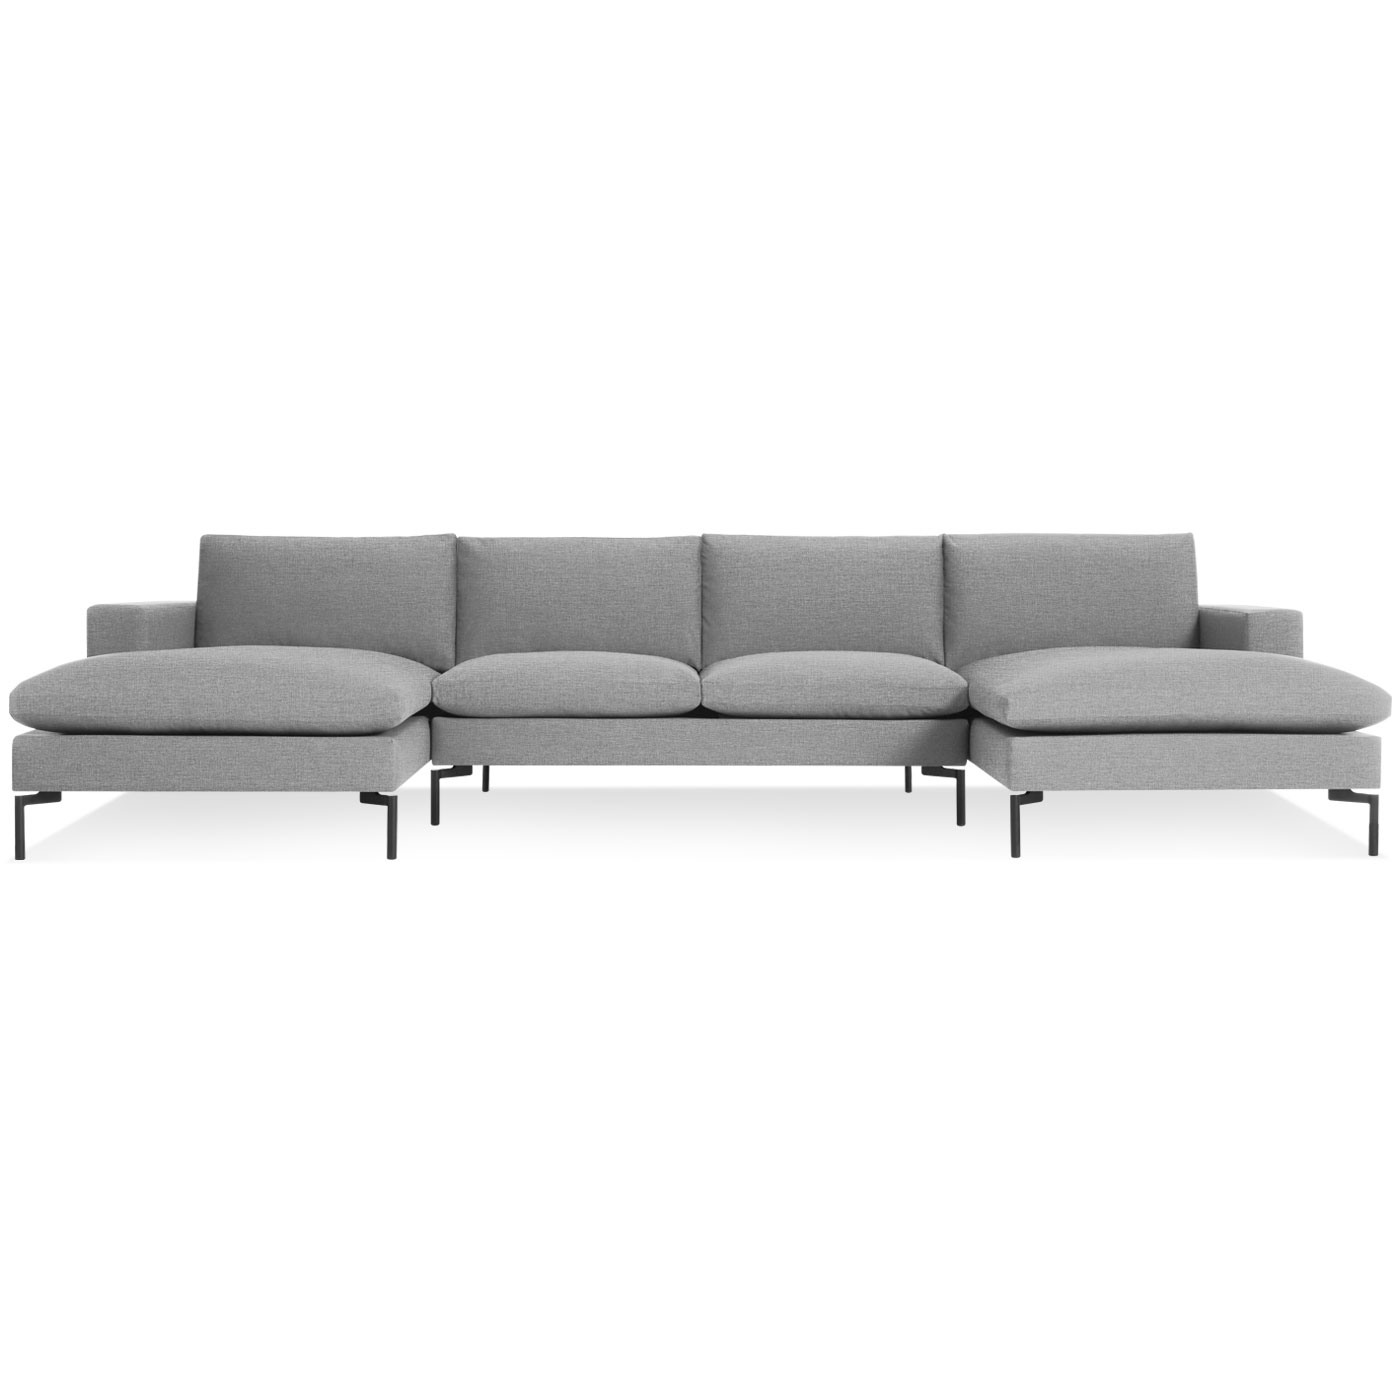 New Standard Modern U Shaped Sectional Sofa | Blu Dot With Modern U Shaped Sectionals (Photo 14 of 15)